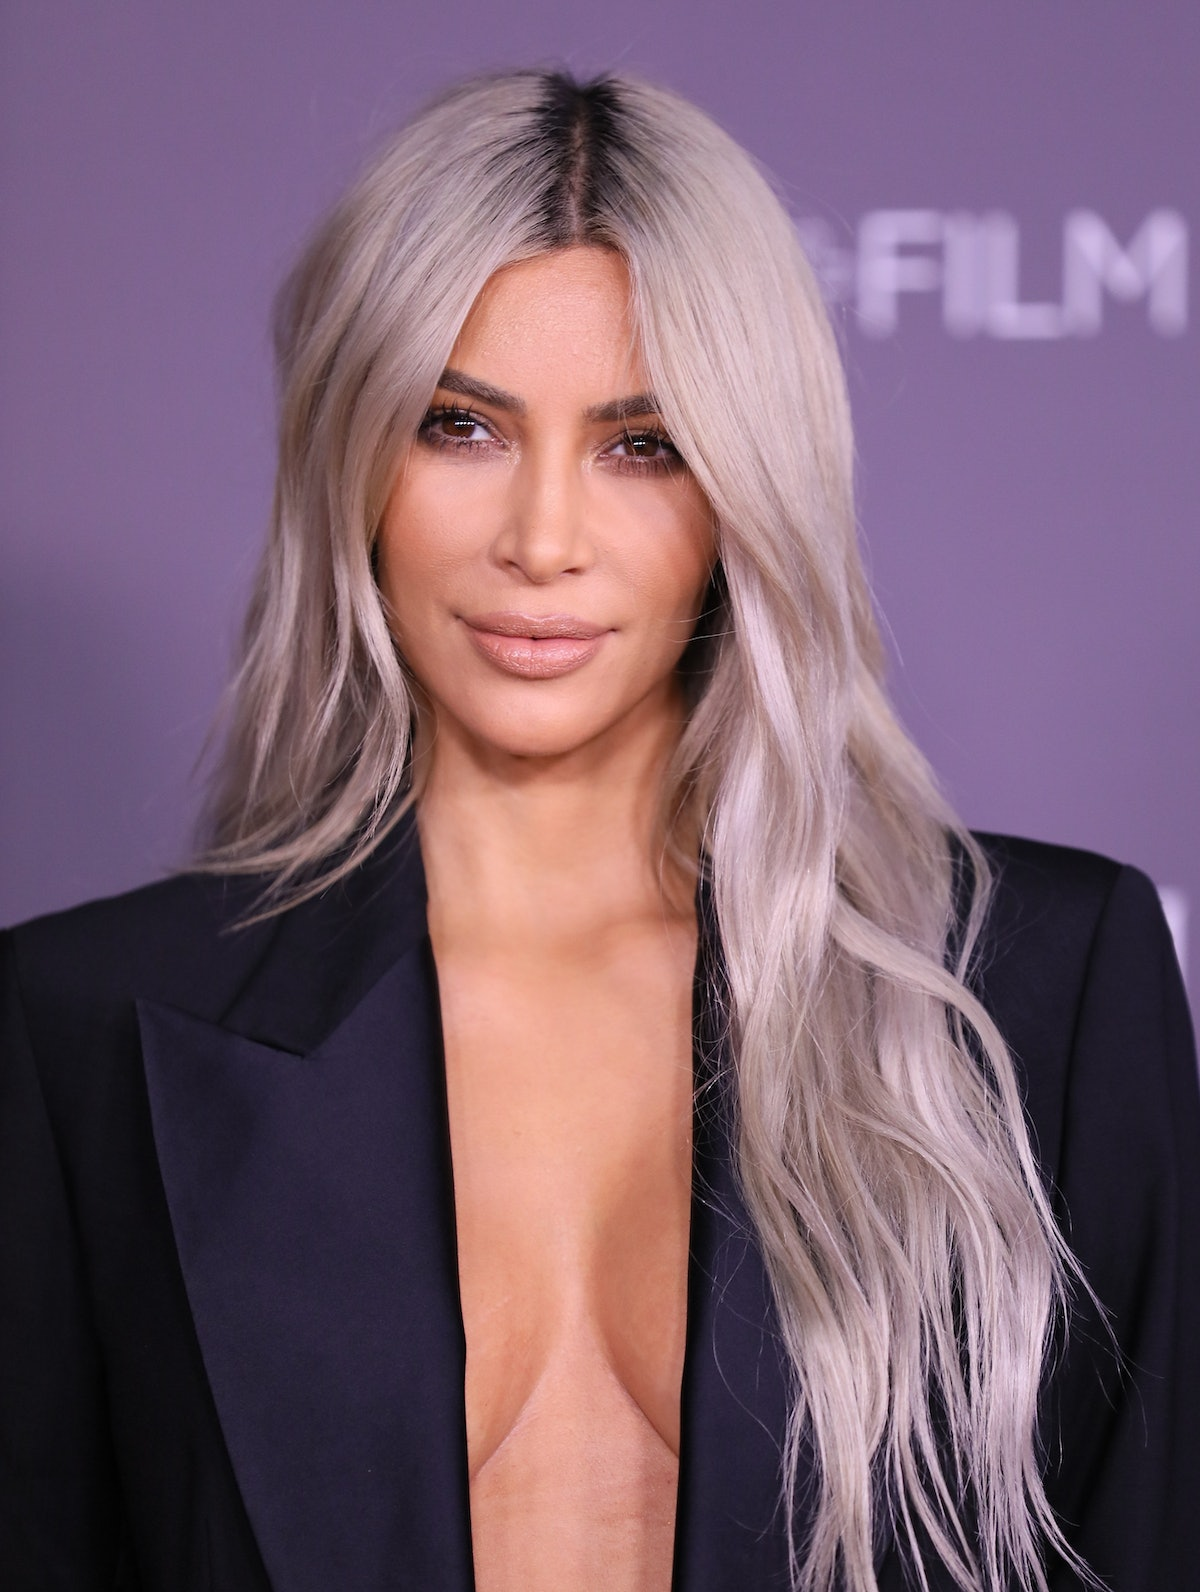 LOS ANGELES, CA - NOVEMBER 04: Kim Kardashian attends the 2017 LACMA Art + Film Gala Honoring Mark Bradford and George Lucas presented by Gucci at LACMA on November 4, 2017 in Los Angeles, California. (Photo by JB Lacroix/ WireImage)